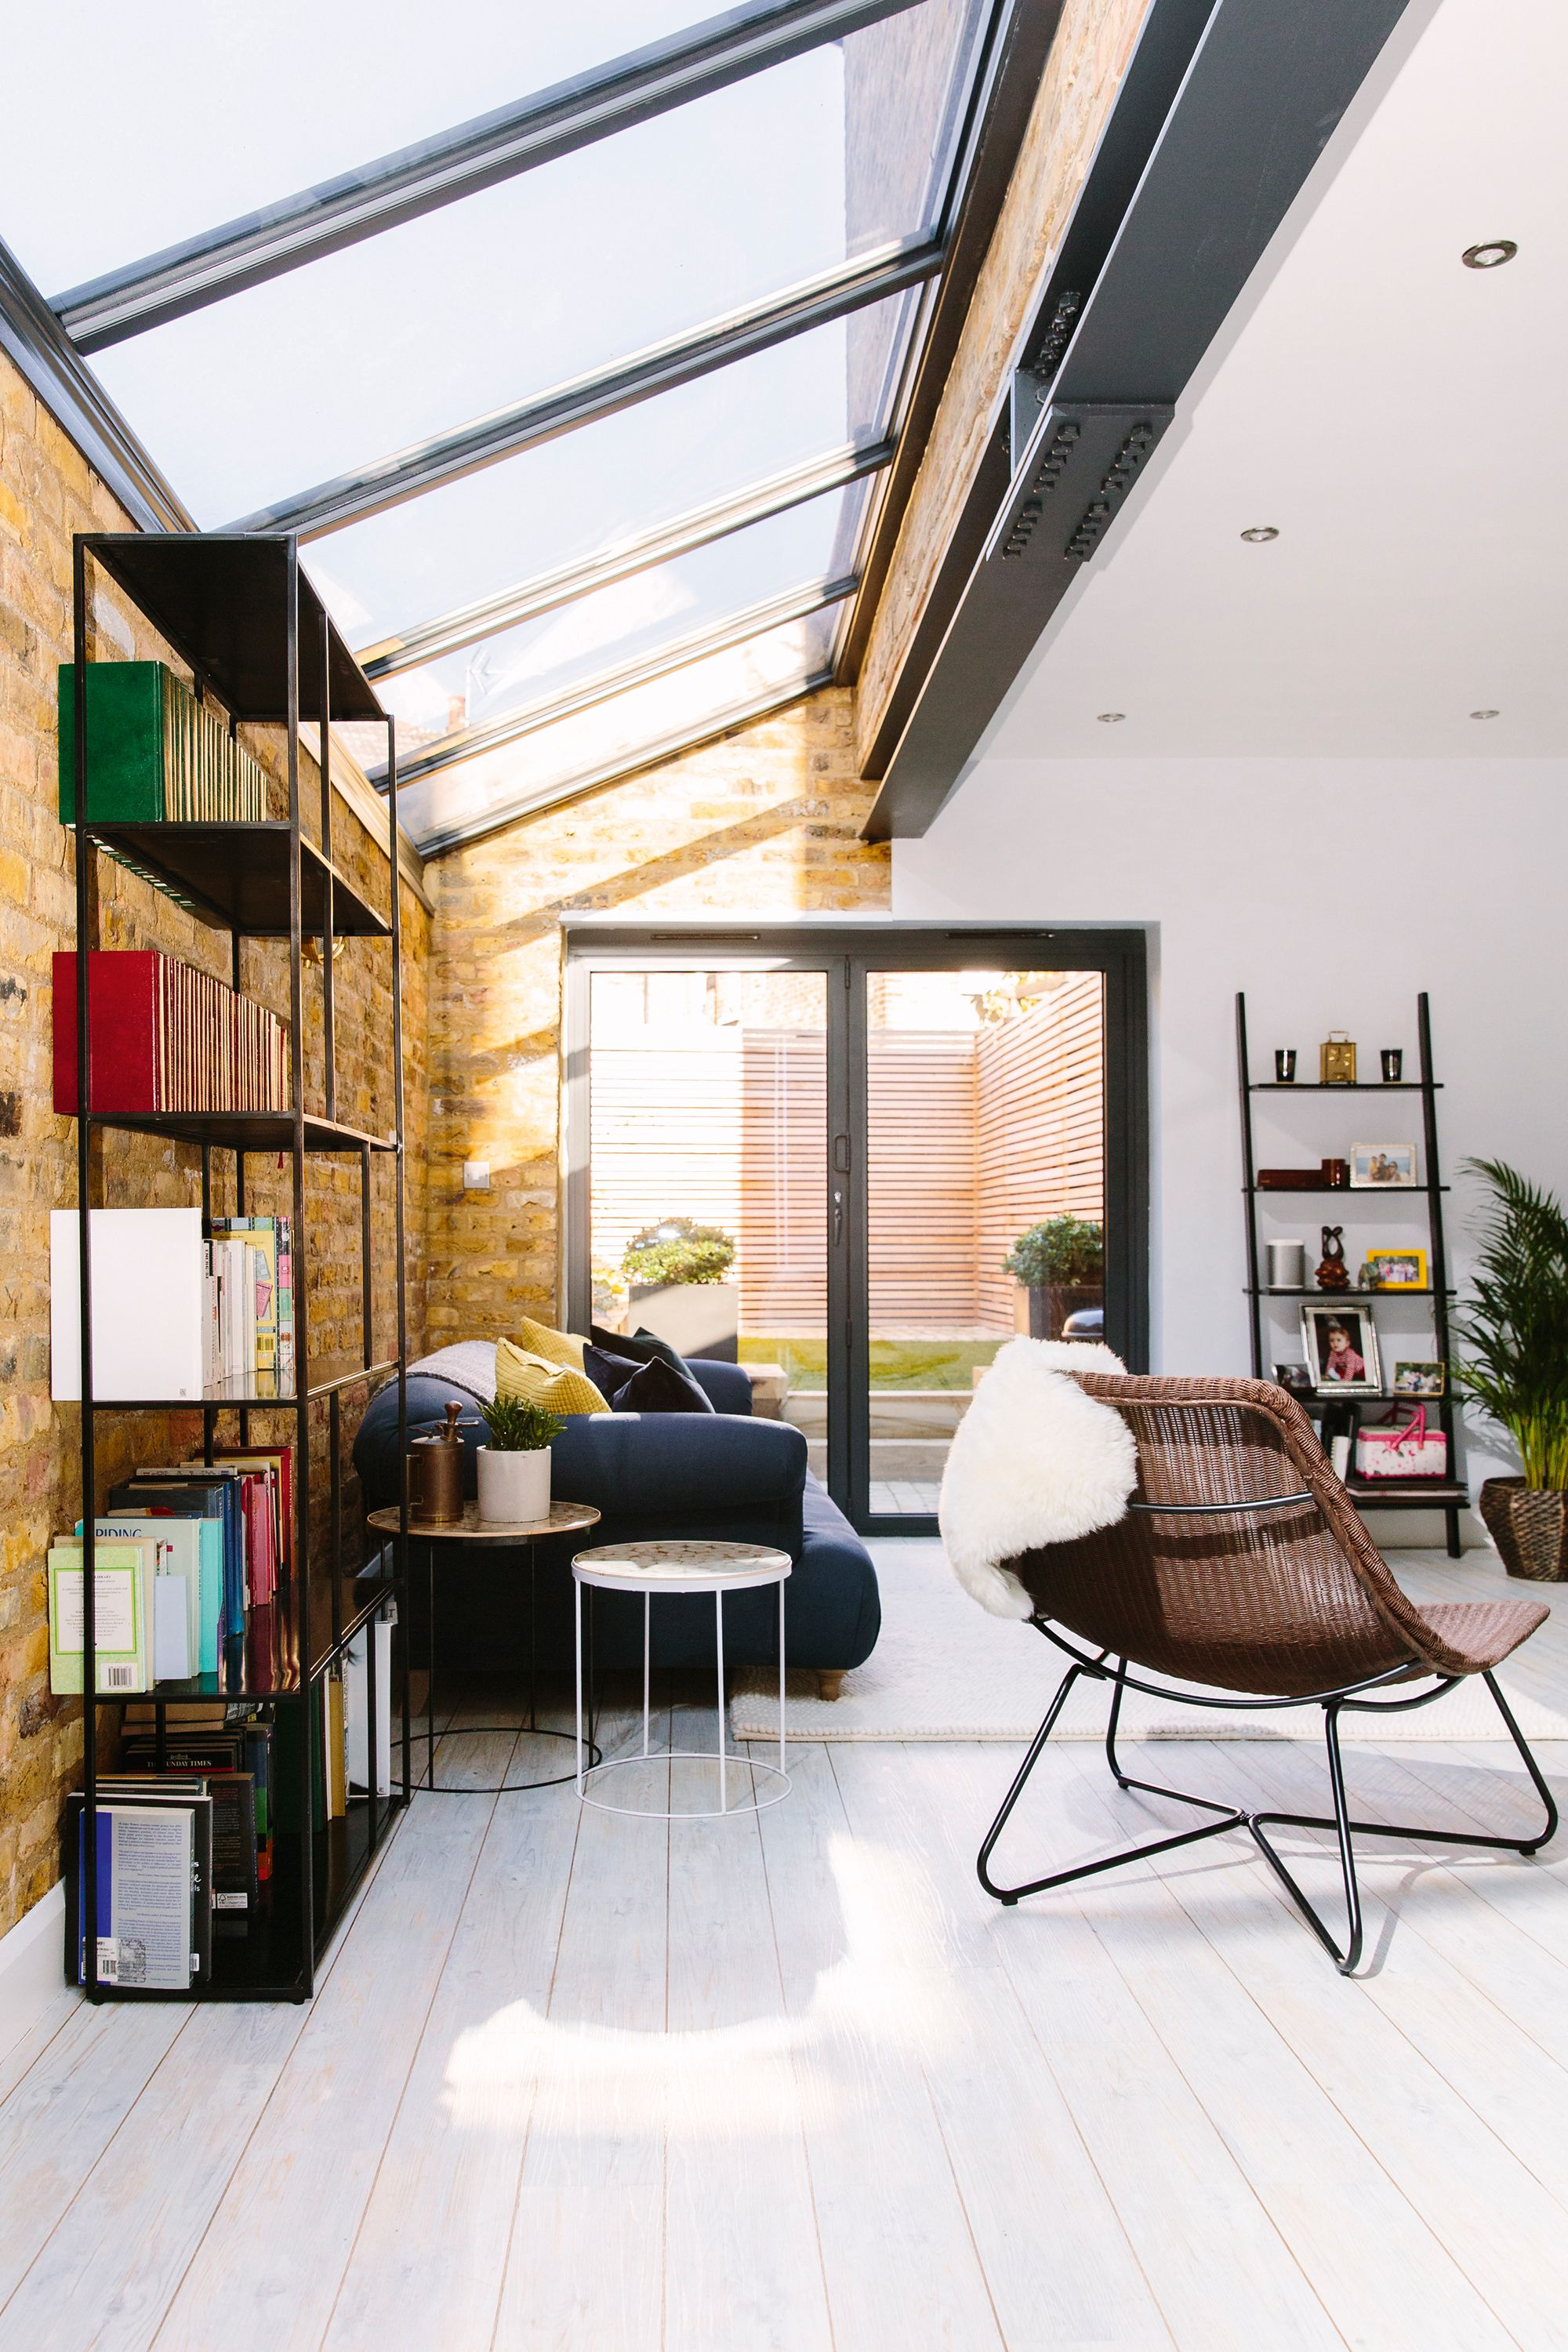 Side return extensions: 18 planning, designing and budgeting tips